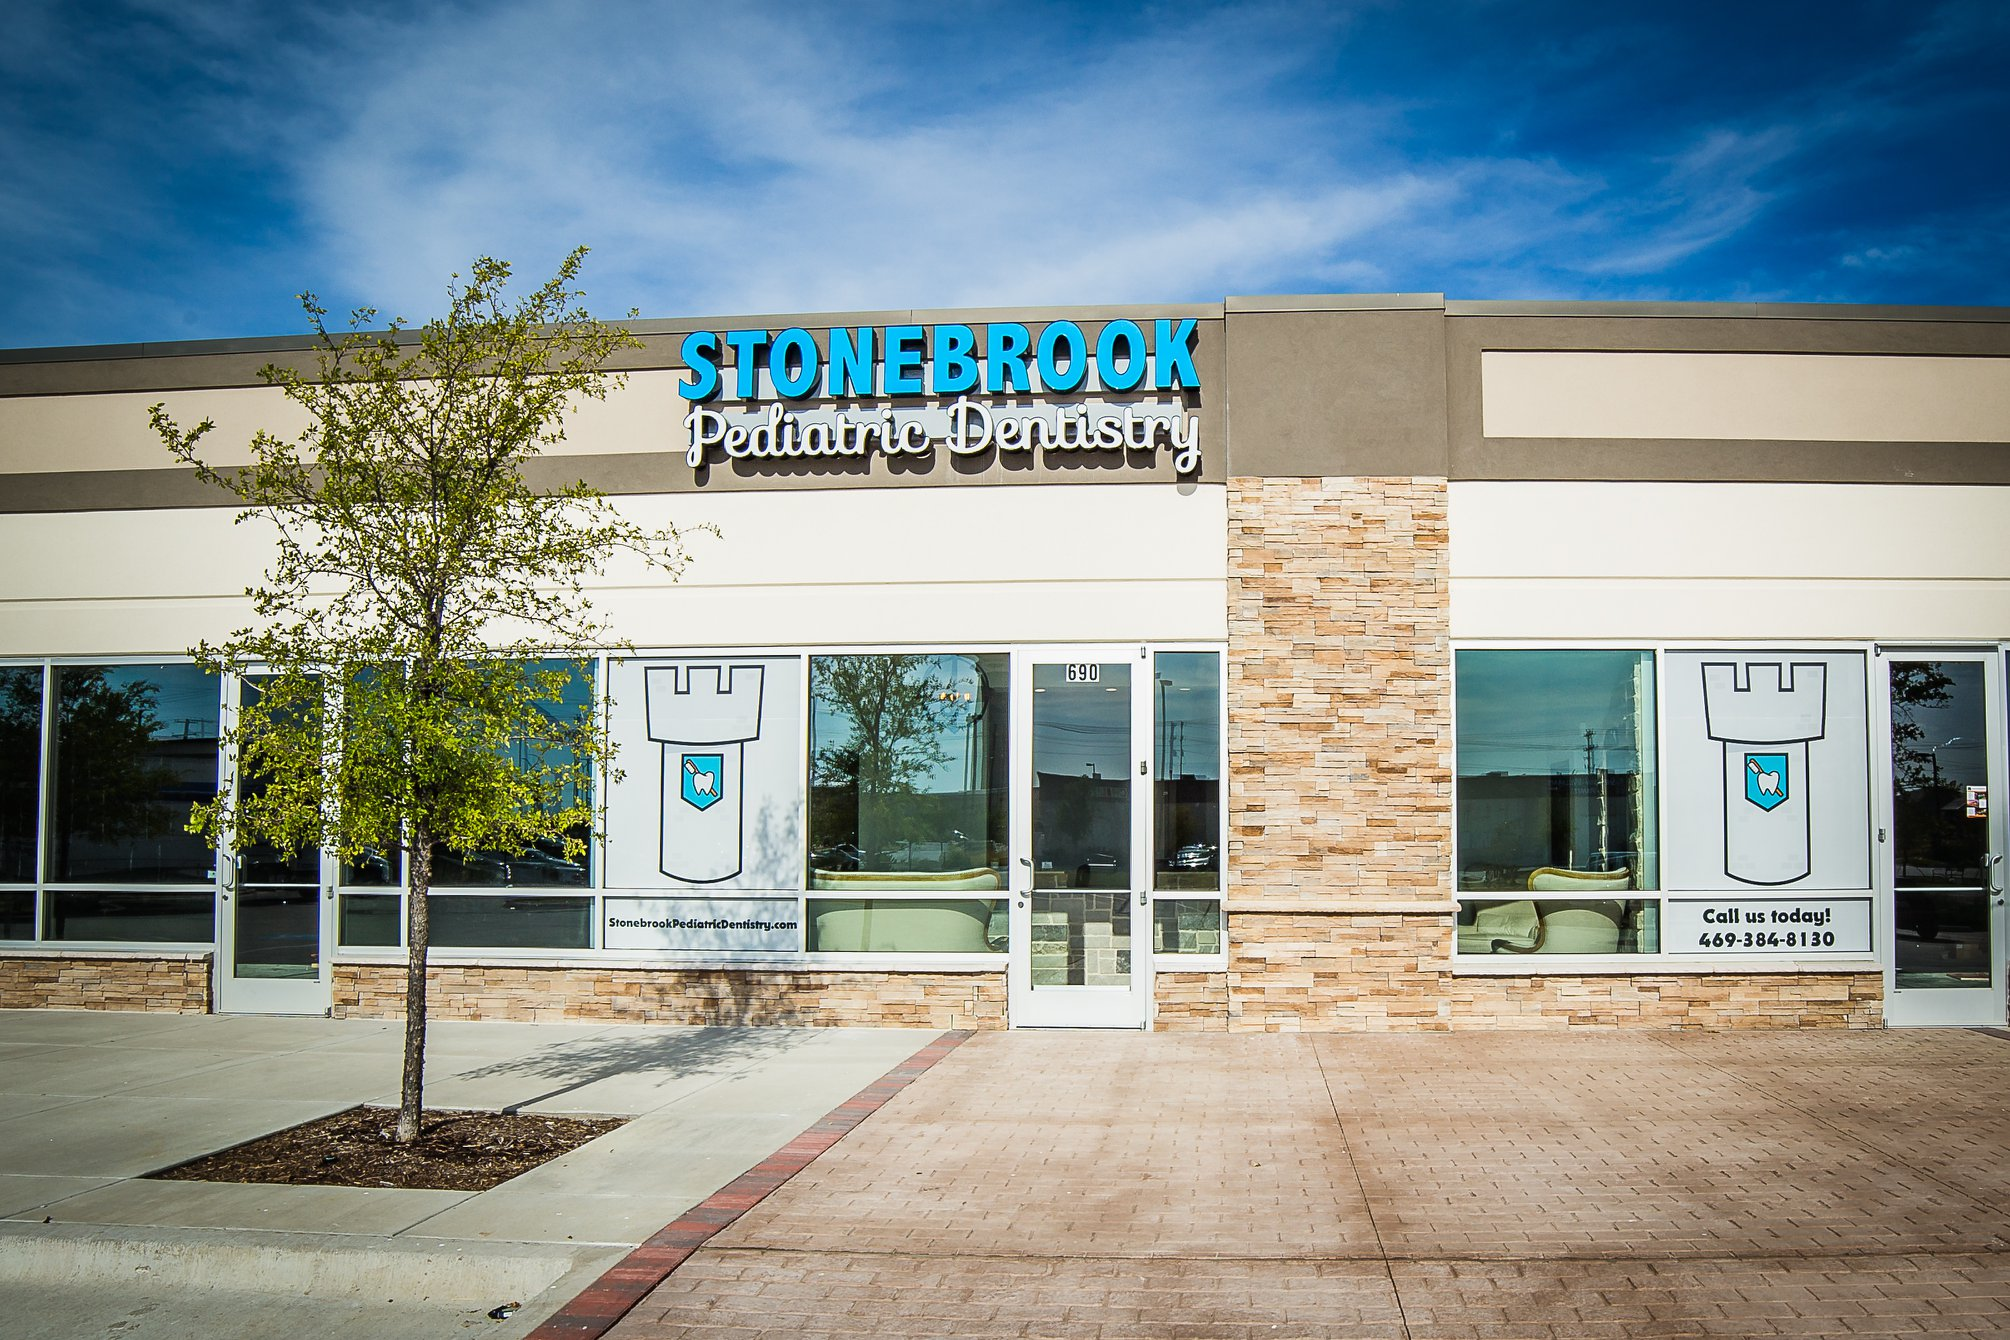 Tales of a successful startup: Stonebrook Pediatric Dentistry